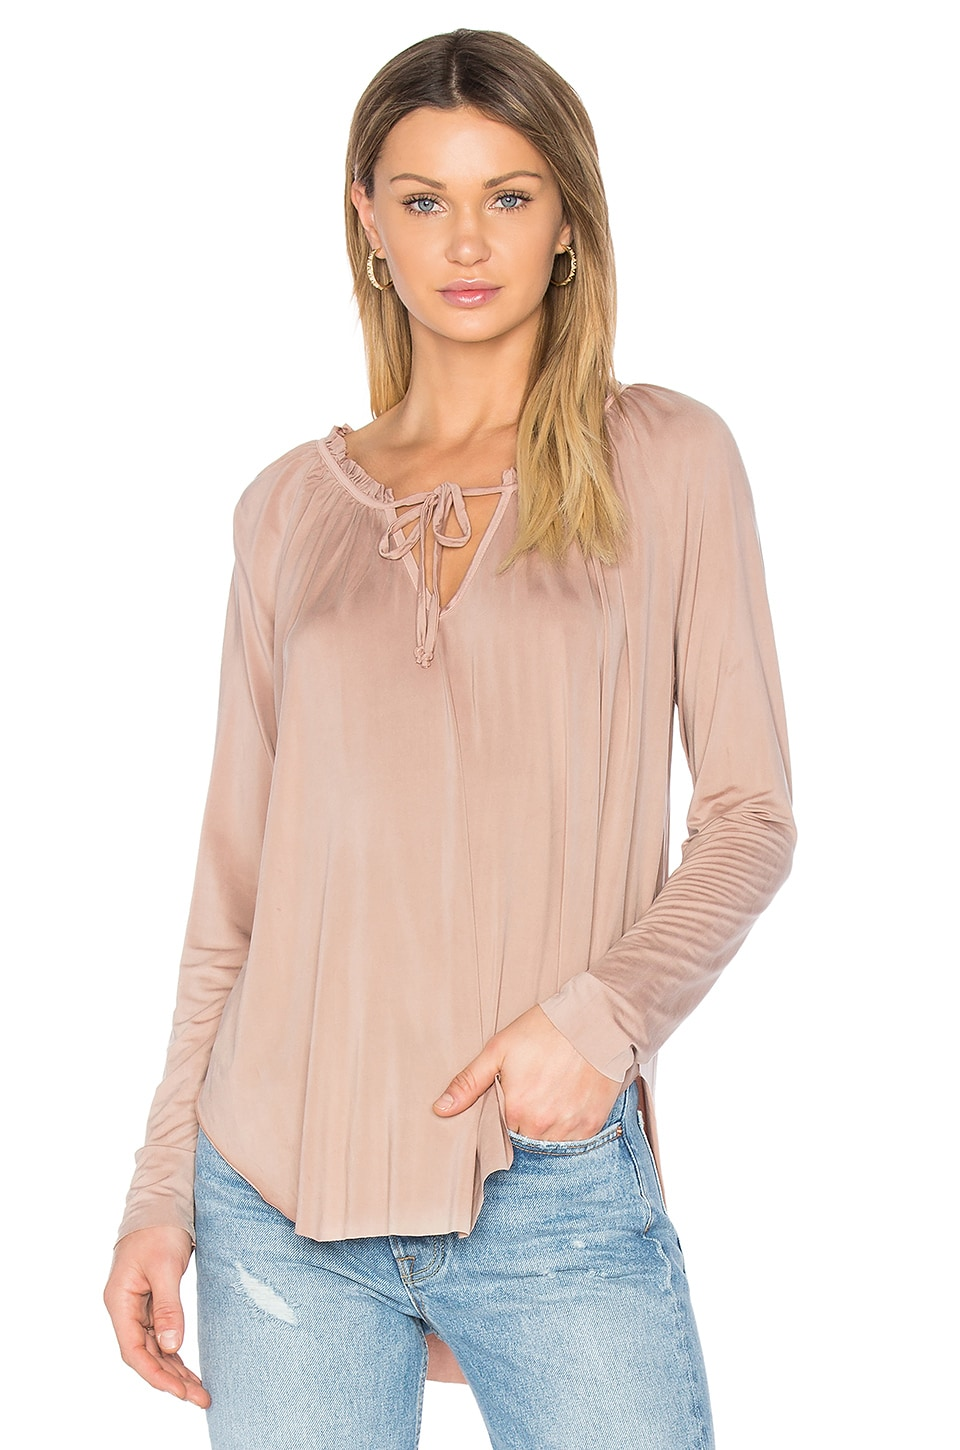 YFB CLOTHING Annette Top in Toffee